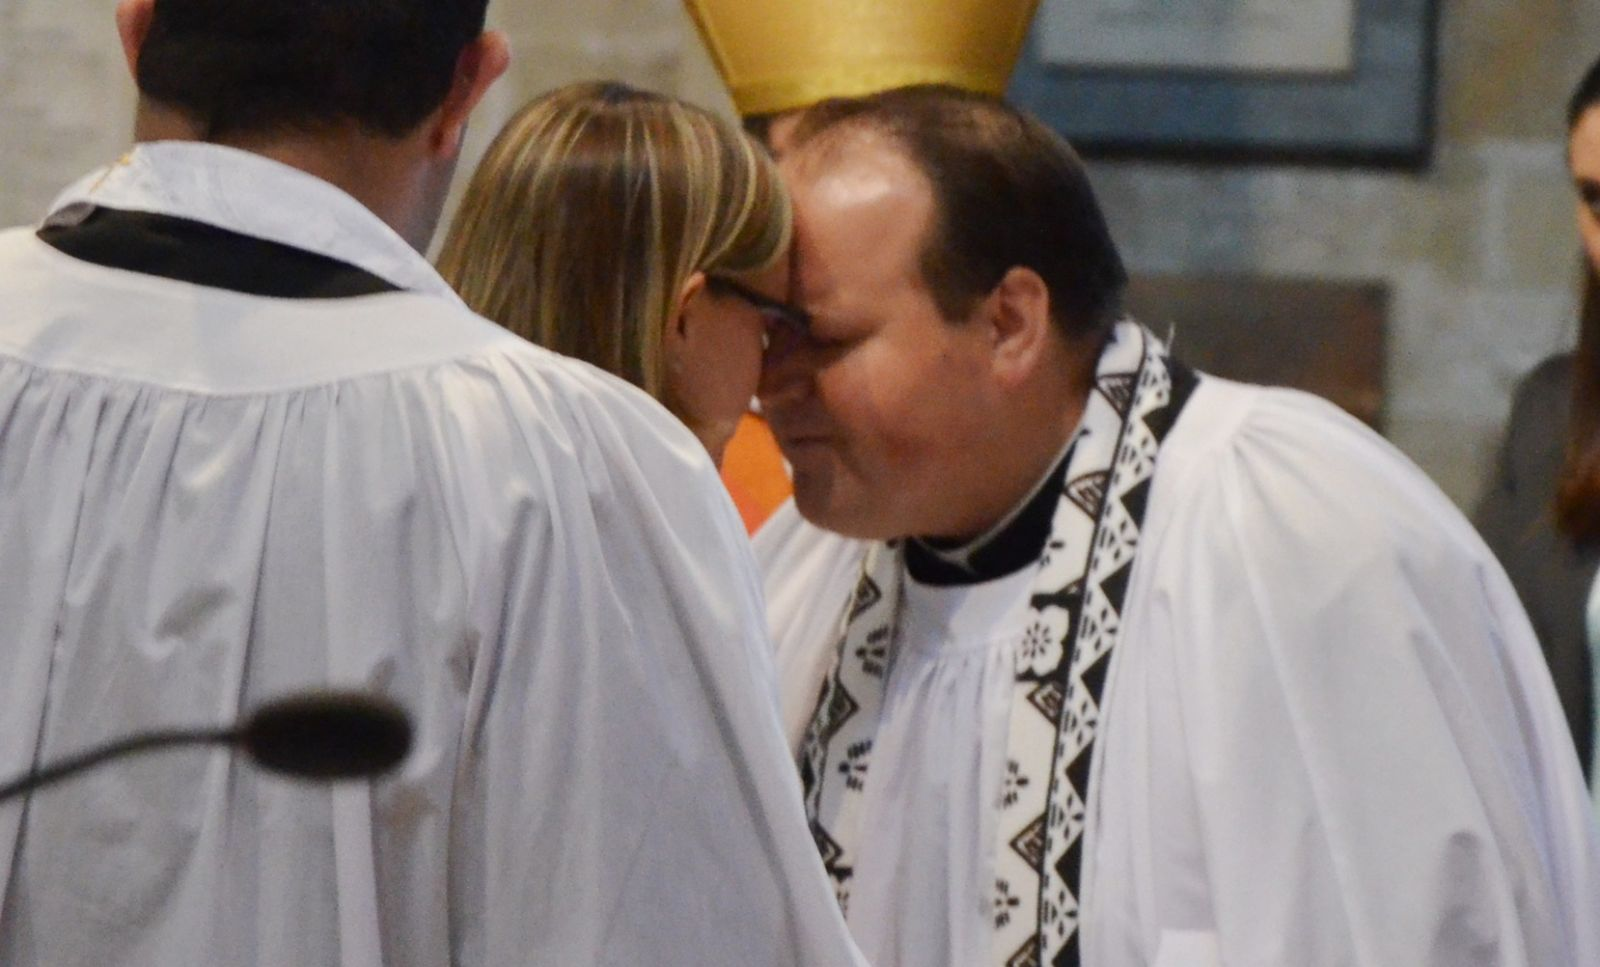 Hundreds pack ripon cathedral to welcome the new bishop of ripon noses and foreheads were pressed together as the visitors firstly exchanged the traditional hongi greeting with bishop helen ann then with the archbishop m4hsunfo